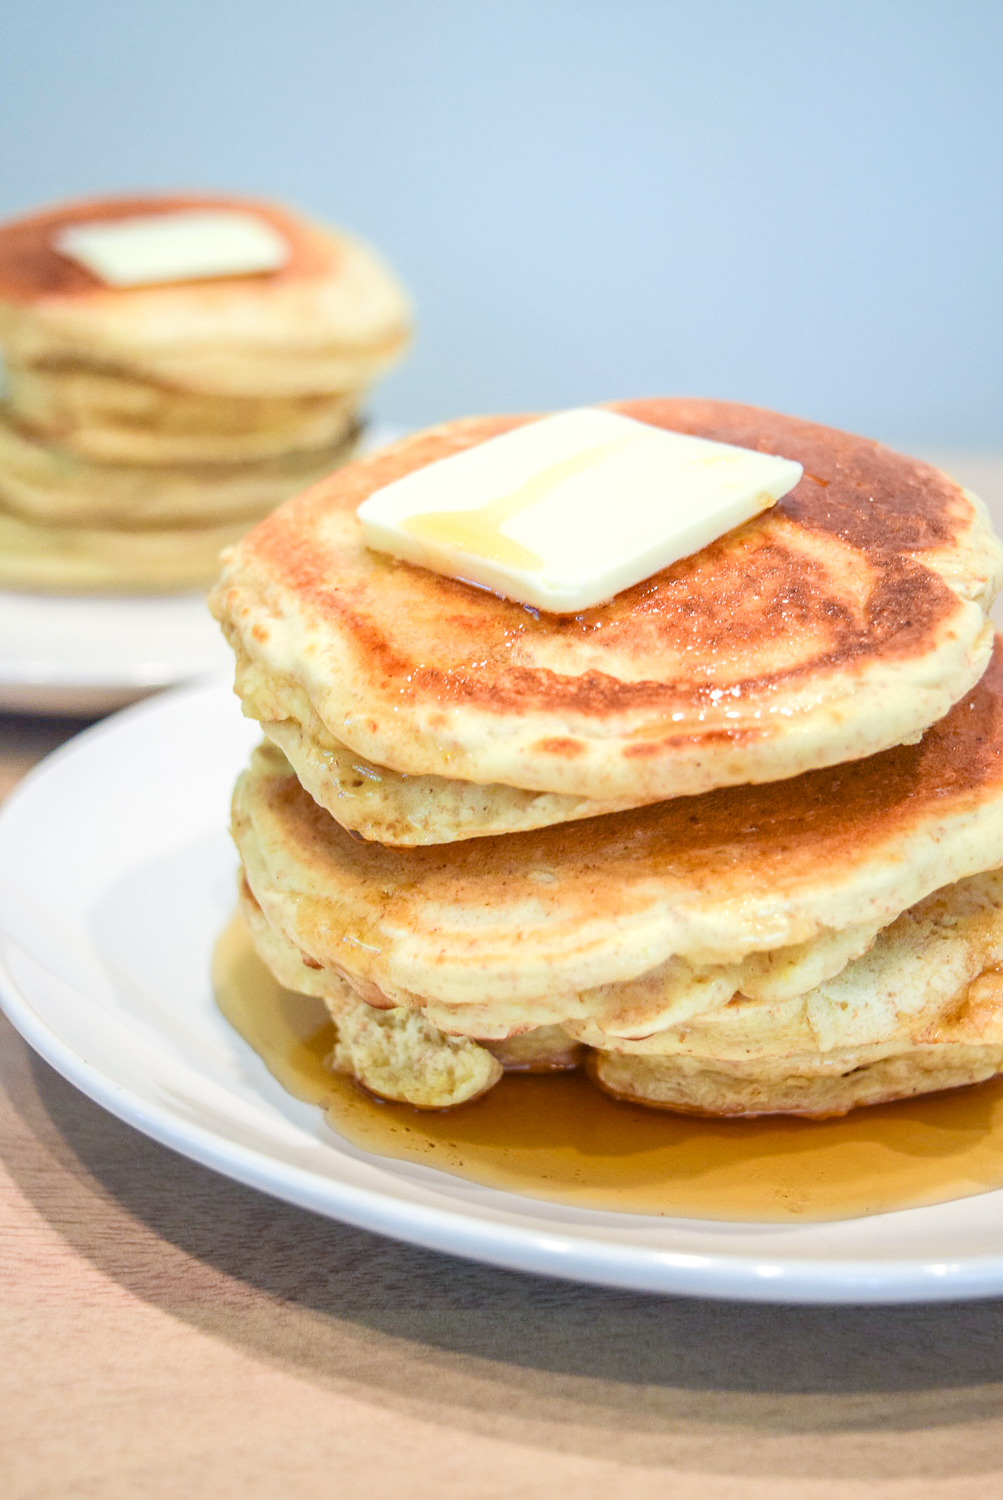 Trader Joe's Multigrain Pancake Mix stacks with butter and maple syrup from right side